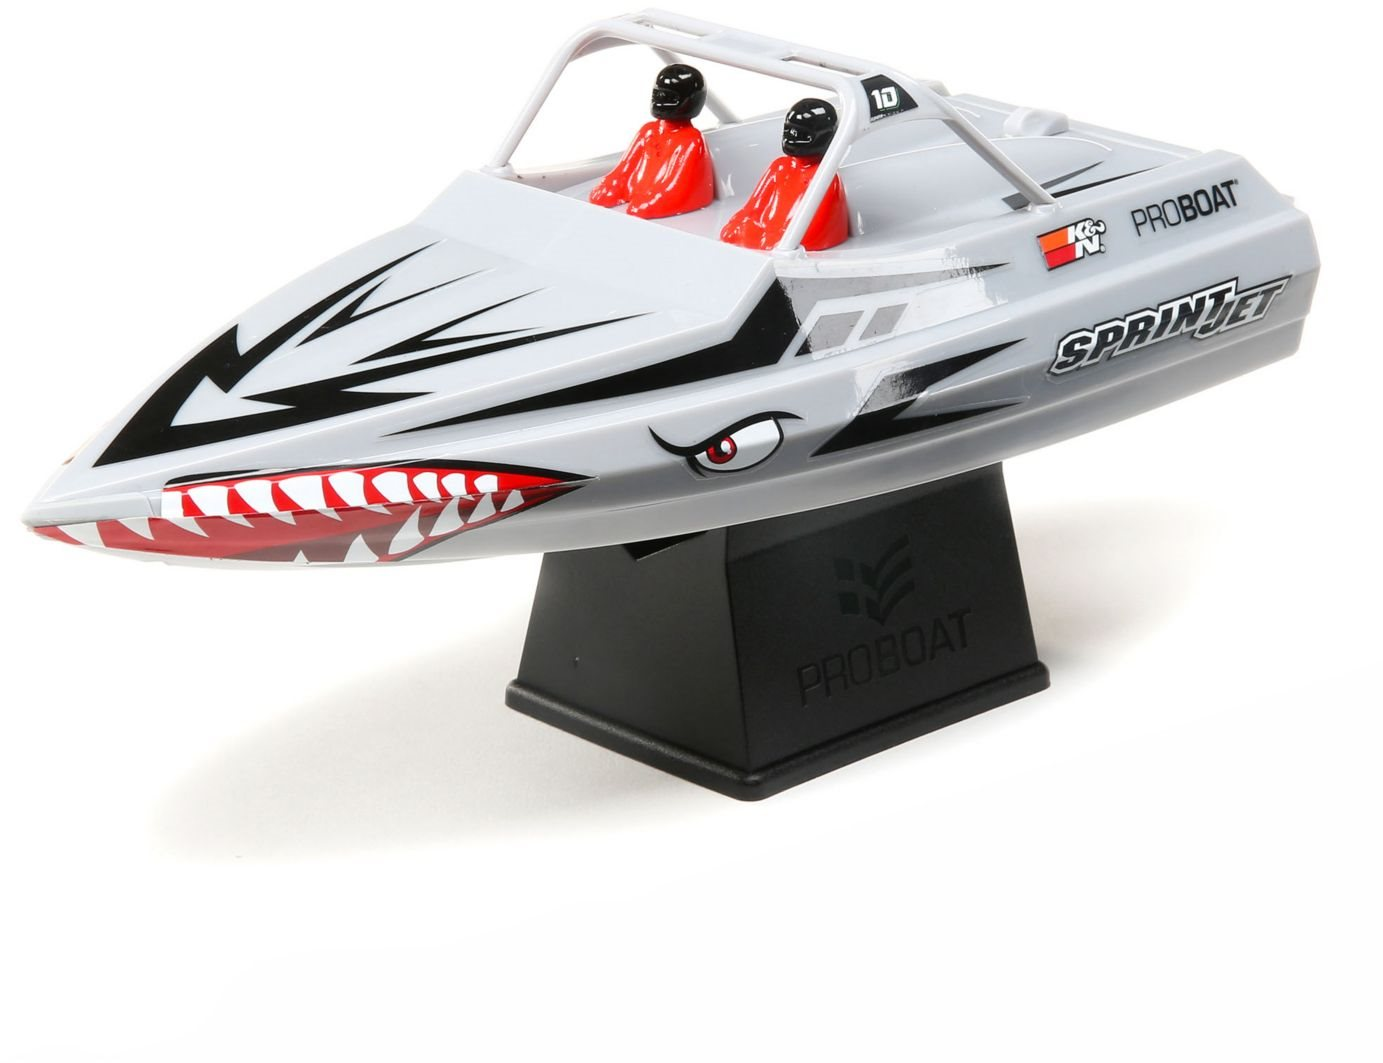 Pro Boat Sprintjet 9-inch Self-Righting Jet Boat RTR, Silver